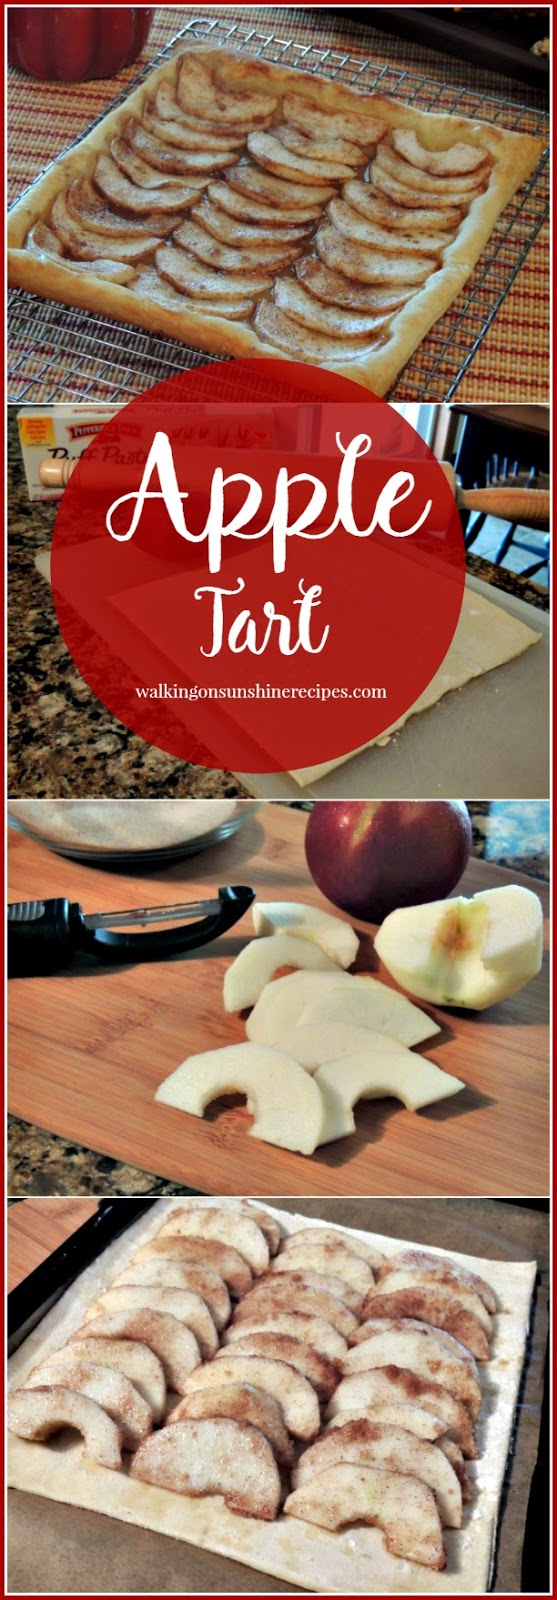 Puff Pastry Apple Tart with baking steps from Walking on Sunshine Recipes